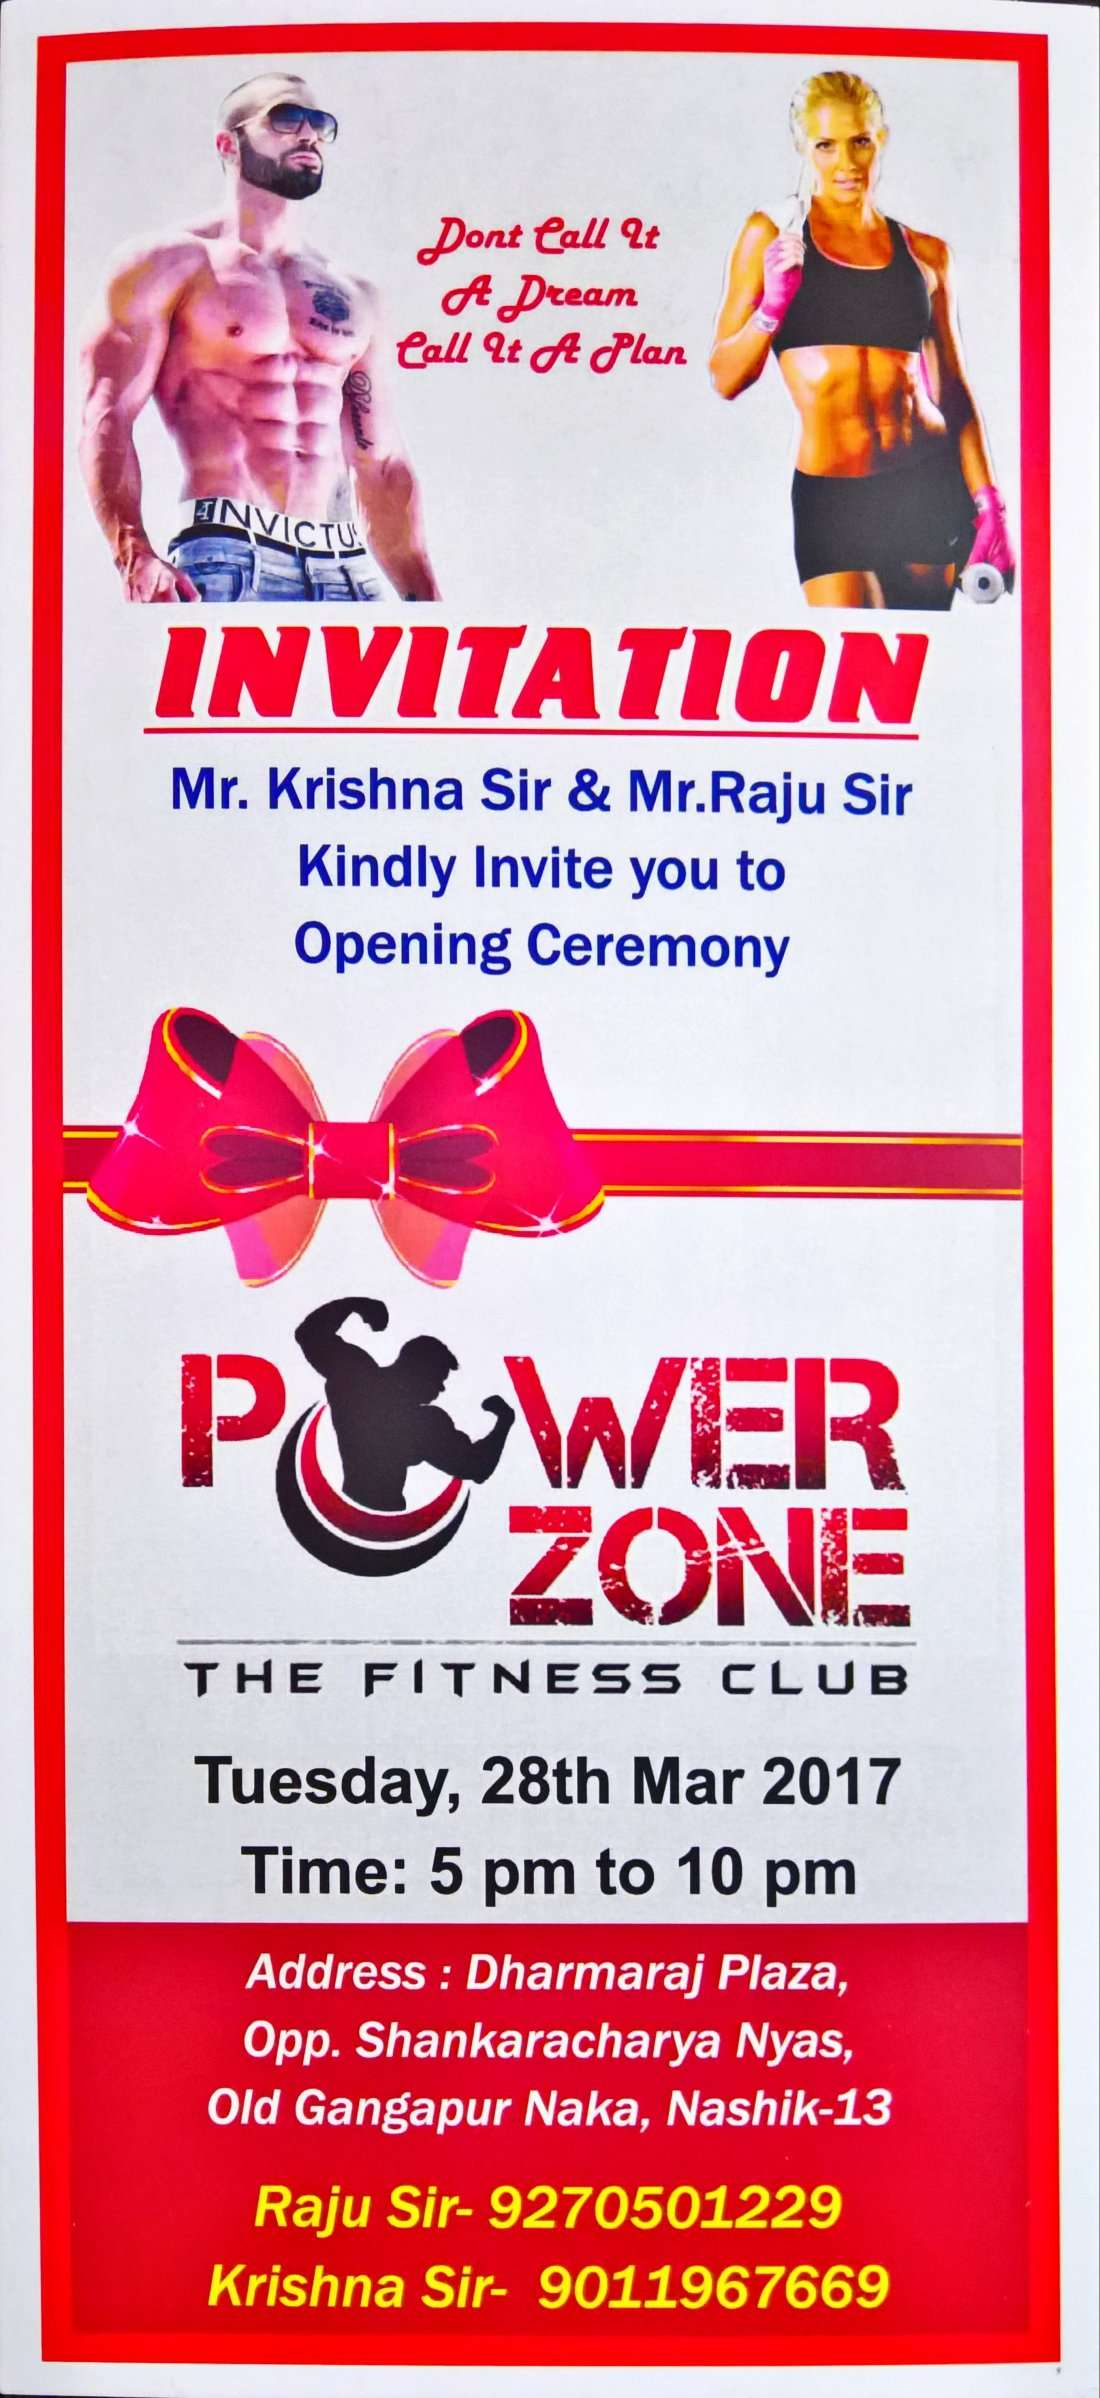 Gym Inauguration At Power Zone The Fitness Club Dharmaraj Plaza